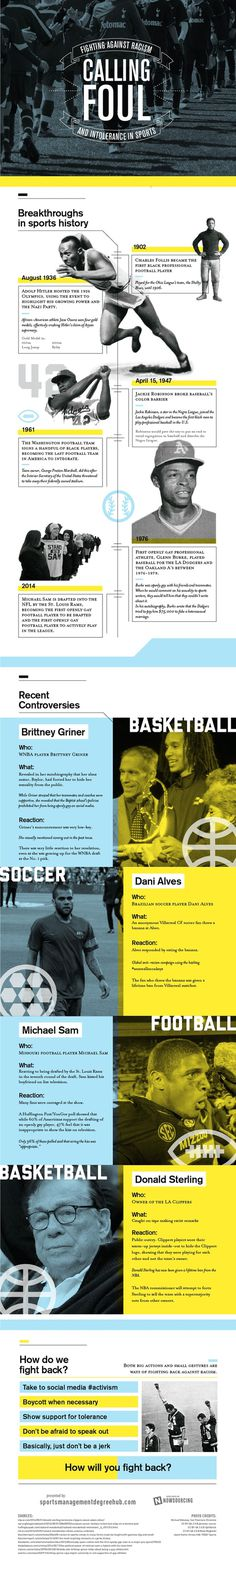 Donald Sterling is hardly the only person responsible for racism in sports.Learn more from this infographic. #infographic #donald #racism #sports #sterling